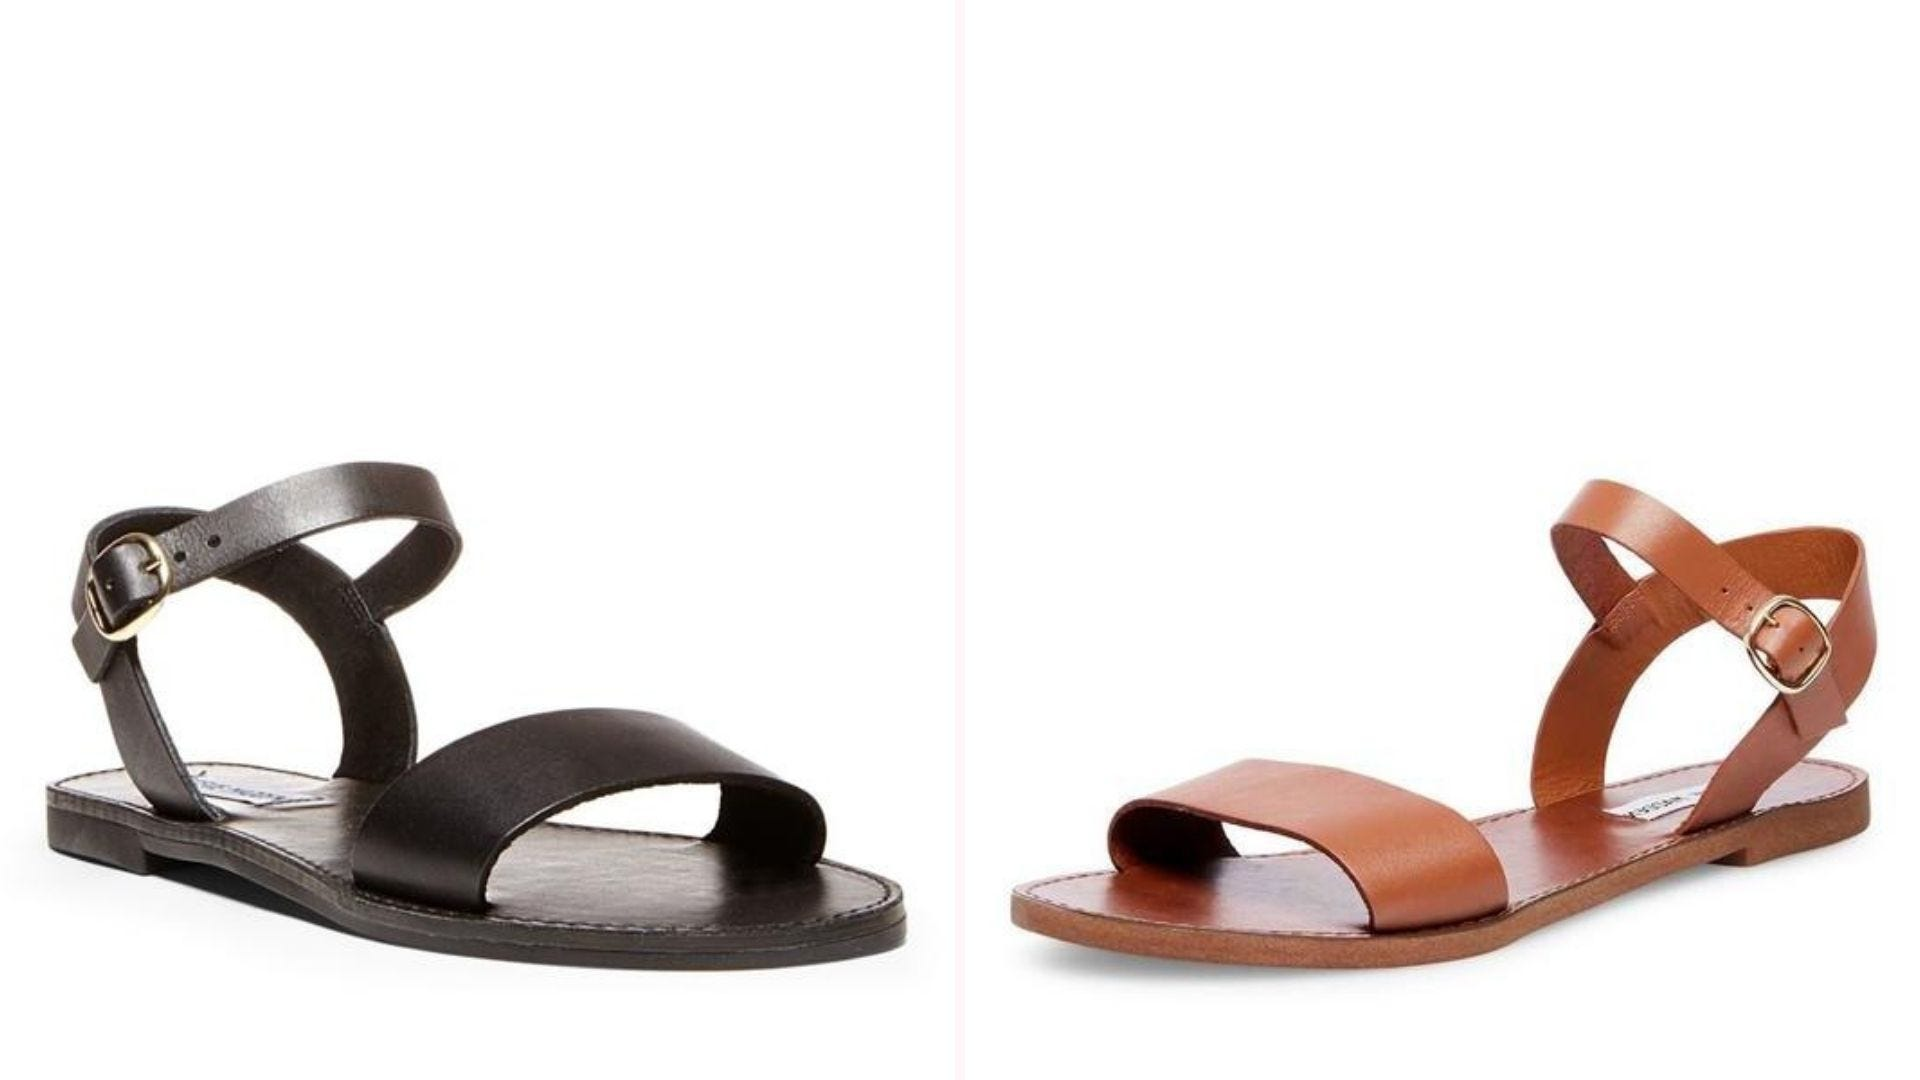 One black sandal and one brown sandal